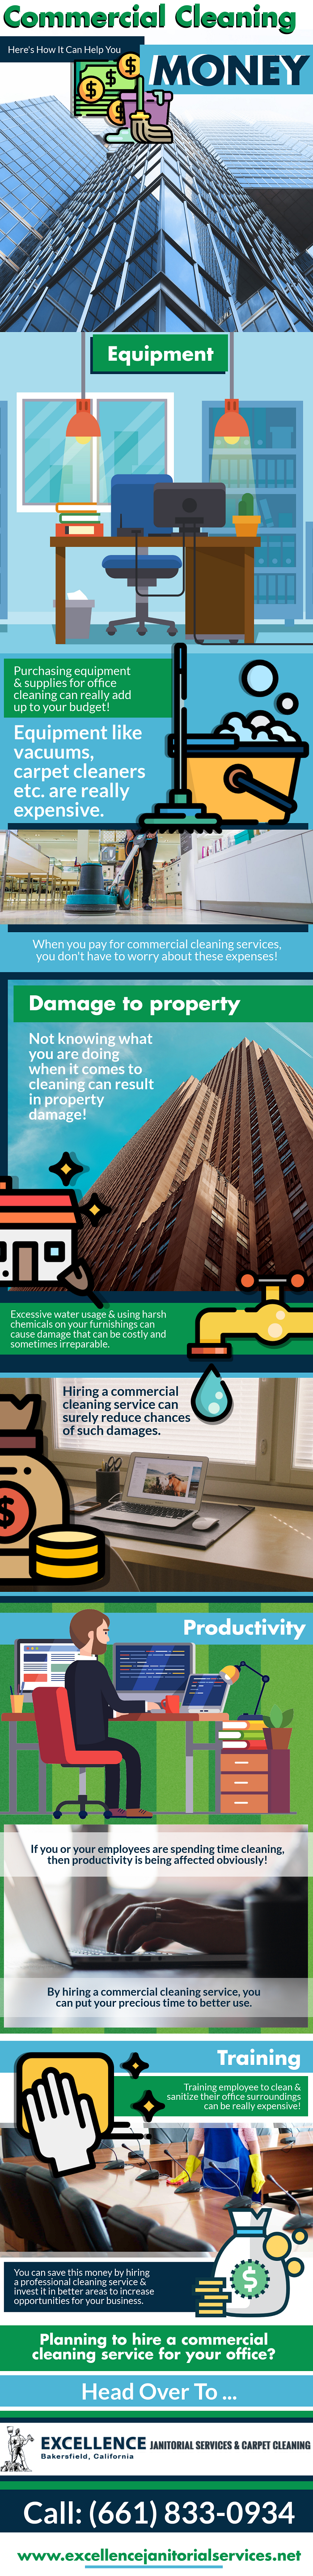 Planning To Hire a Commercial Cleaning Service for Your Office?